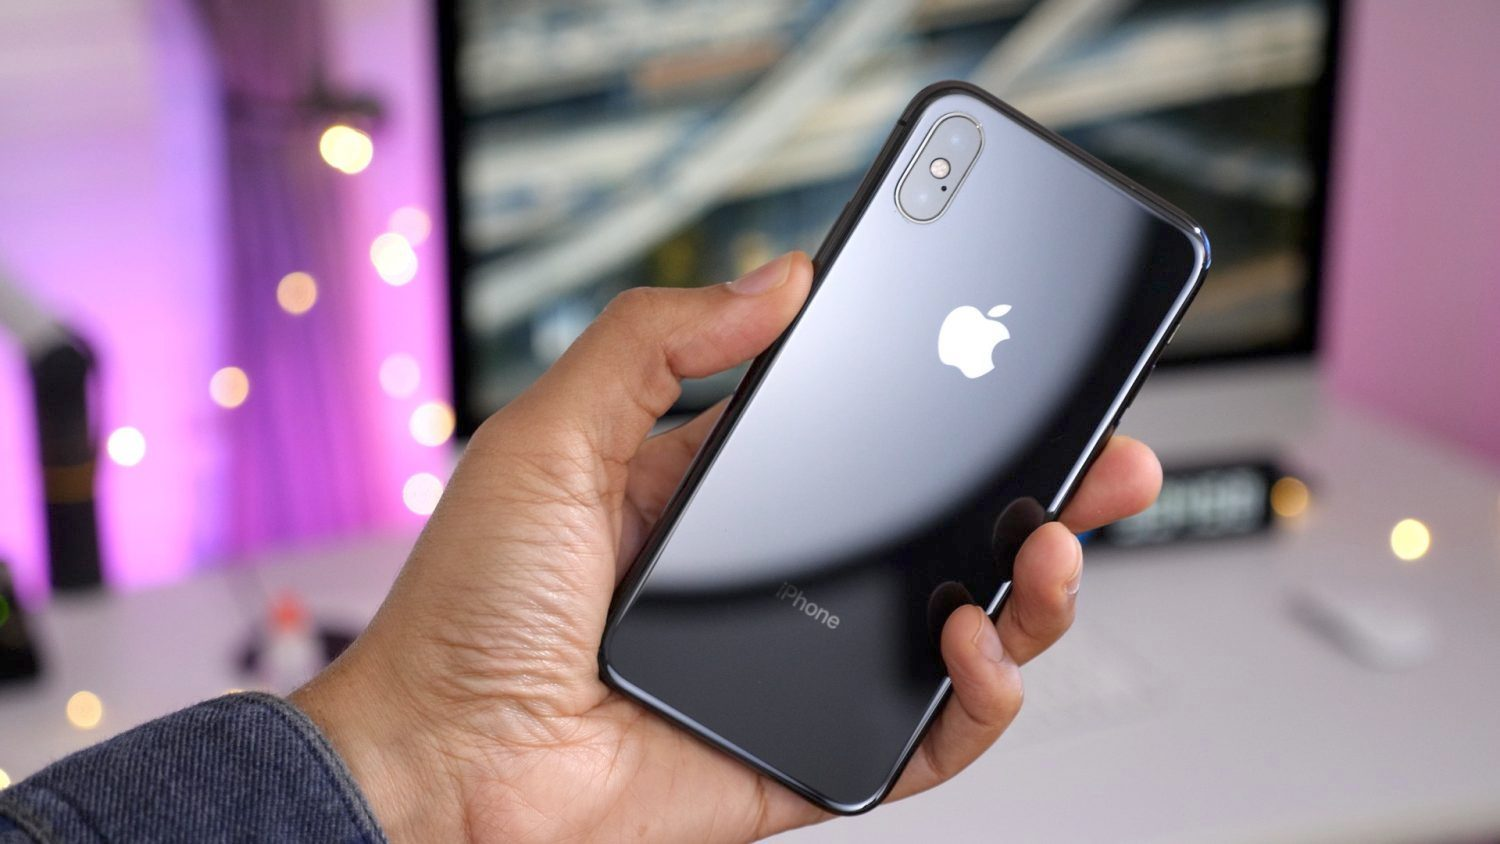 Sprint offers iPhone X for $5/mo. after trade-in with latest offer